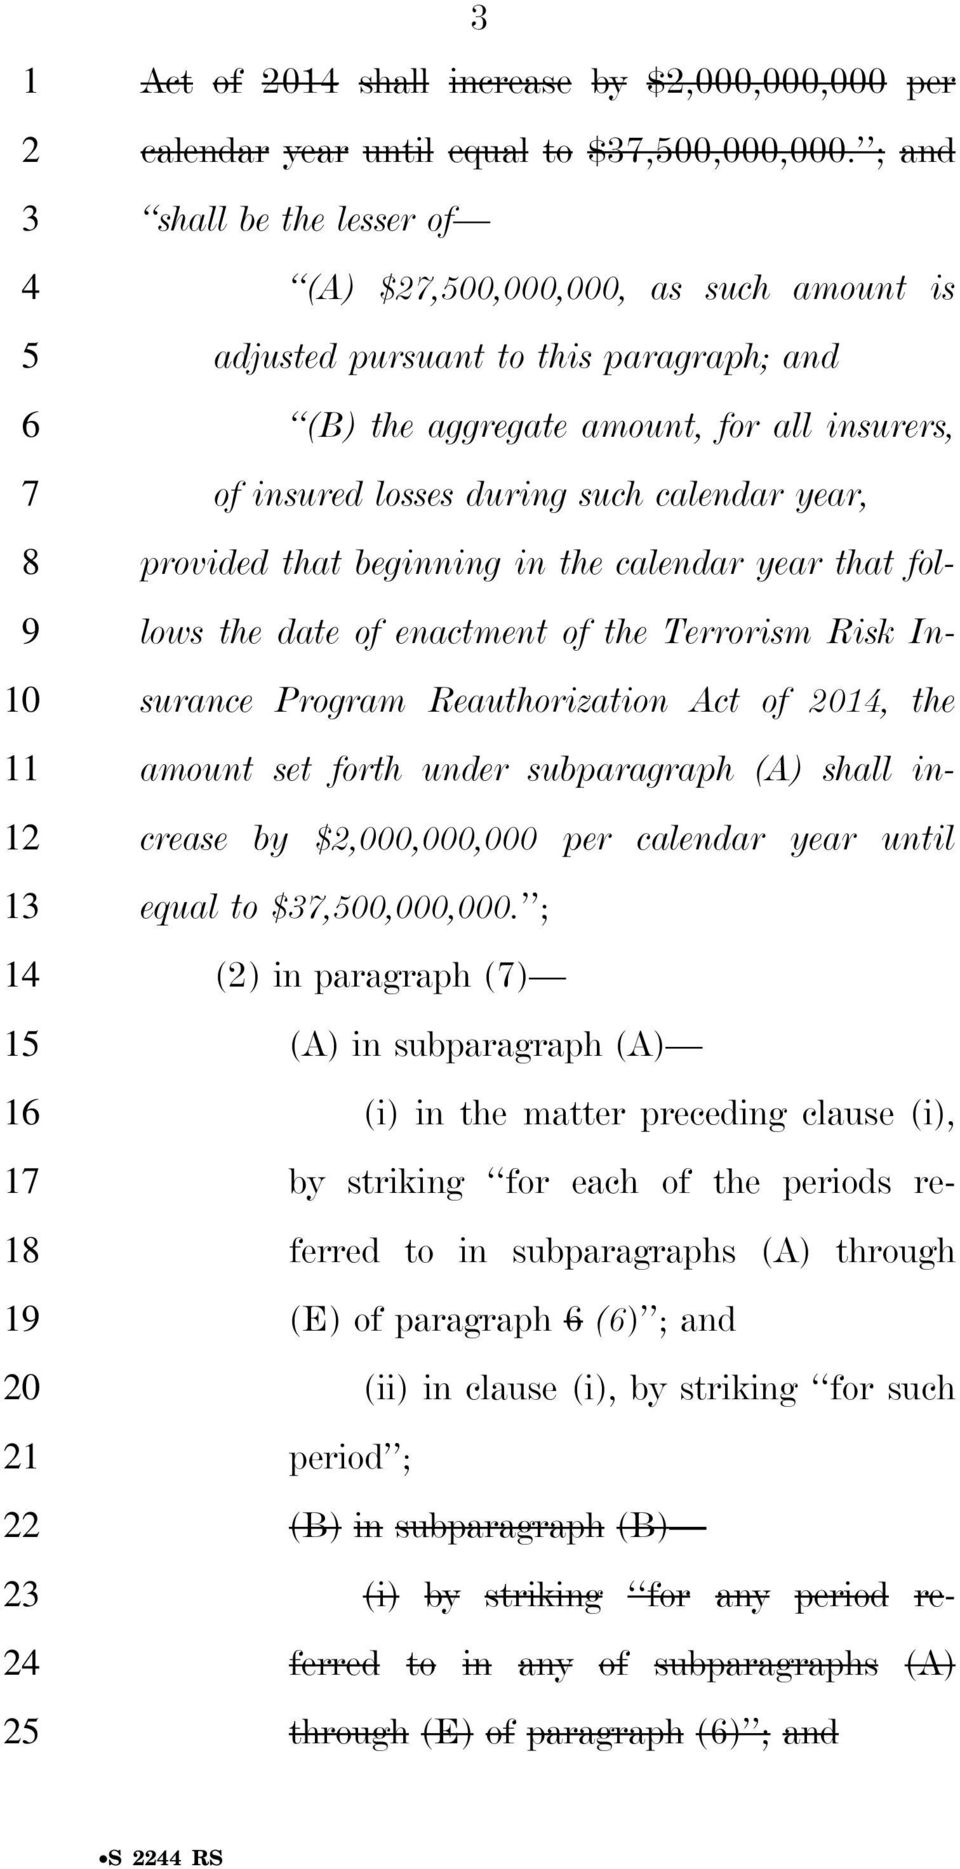 provided that beginning in the calendar year that fol- lows the date of enactment of the Terrorism Risk In- surance Program Reauthorization Act of 01, the amount set forth under subparagraph (A)